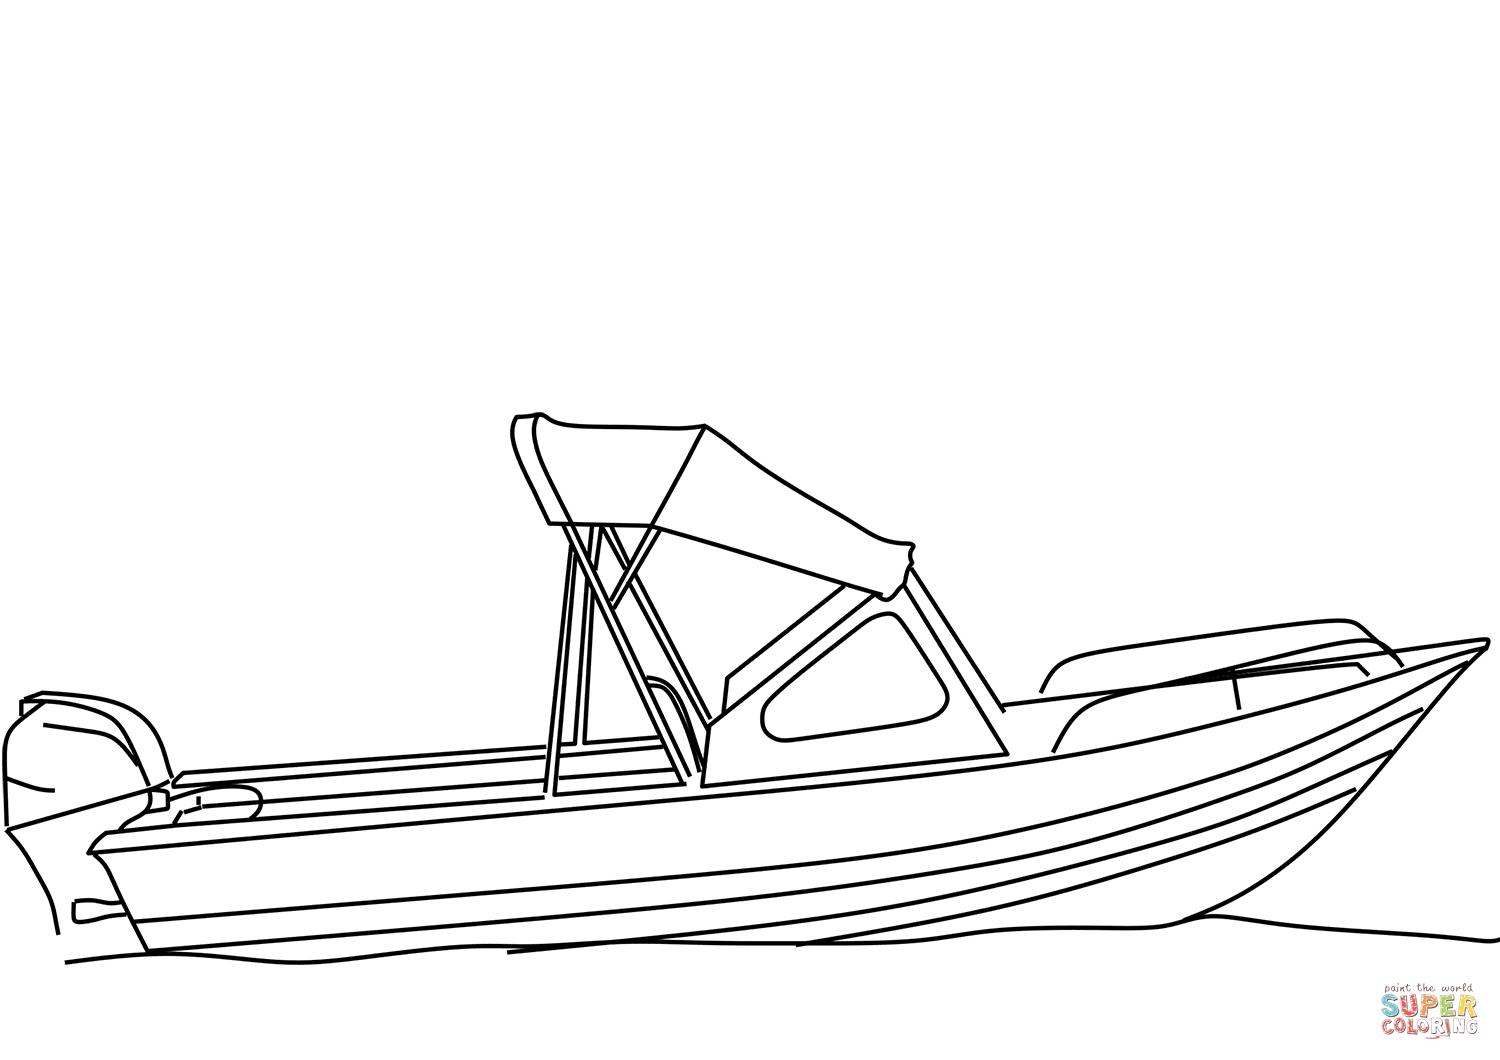 Coloring Ideas : 41 Outstanding Fishing Boat Coloring Pages Coloring - Free Printable Boat Pictures